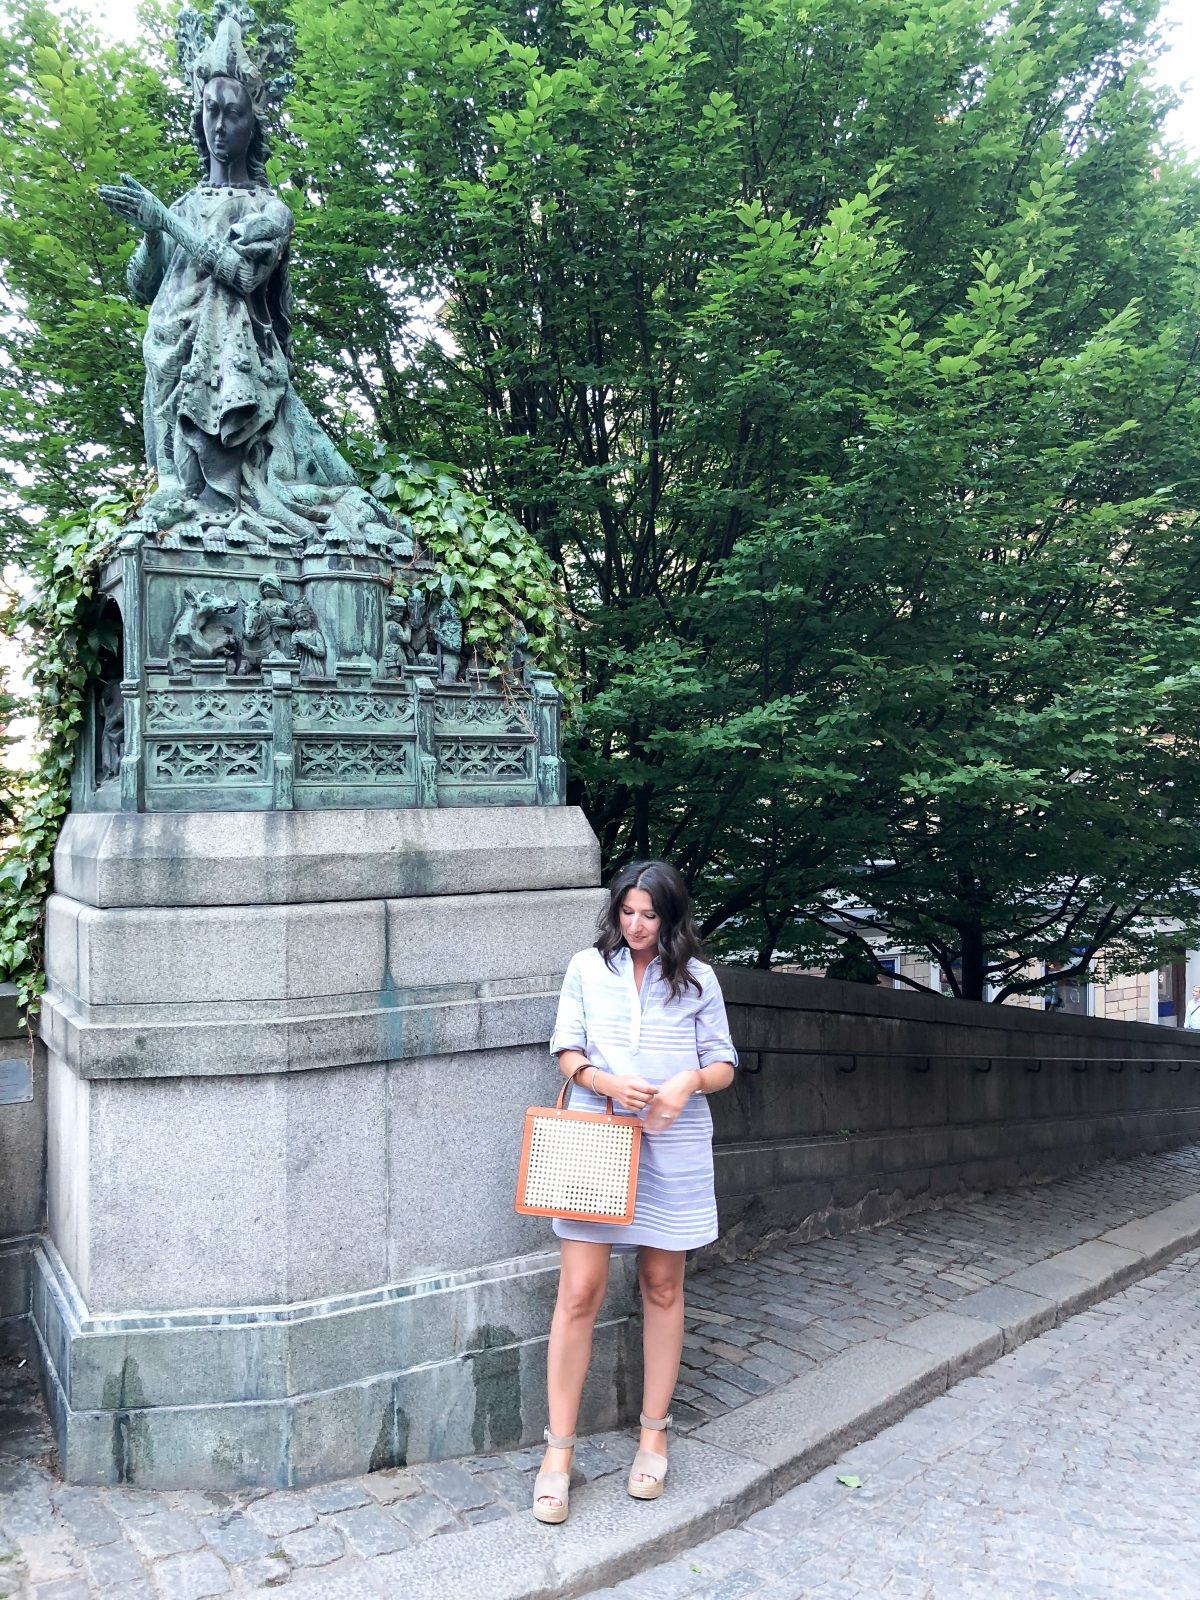 Erin wears a tunic dress with a Palmgrens rattan collection bag in Stockholm Sweden.